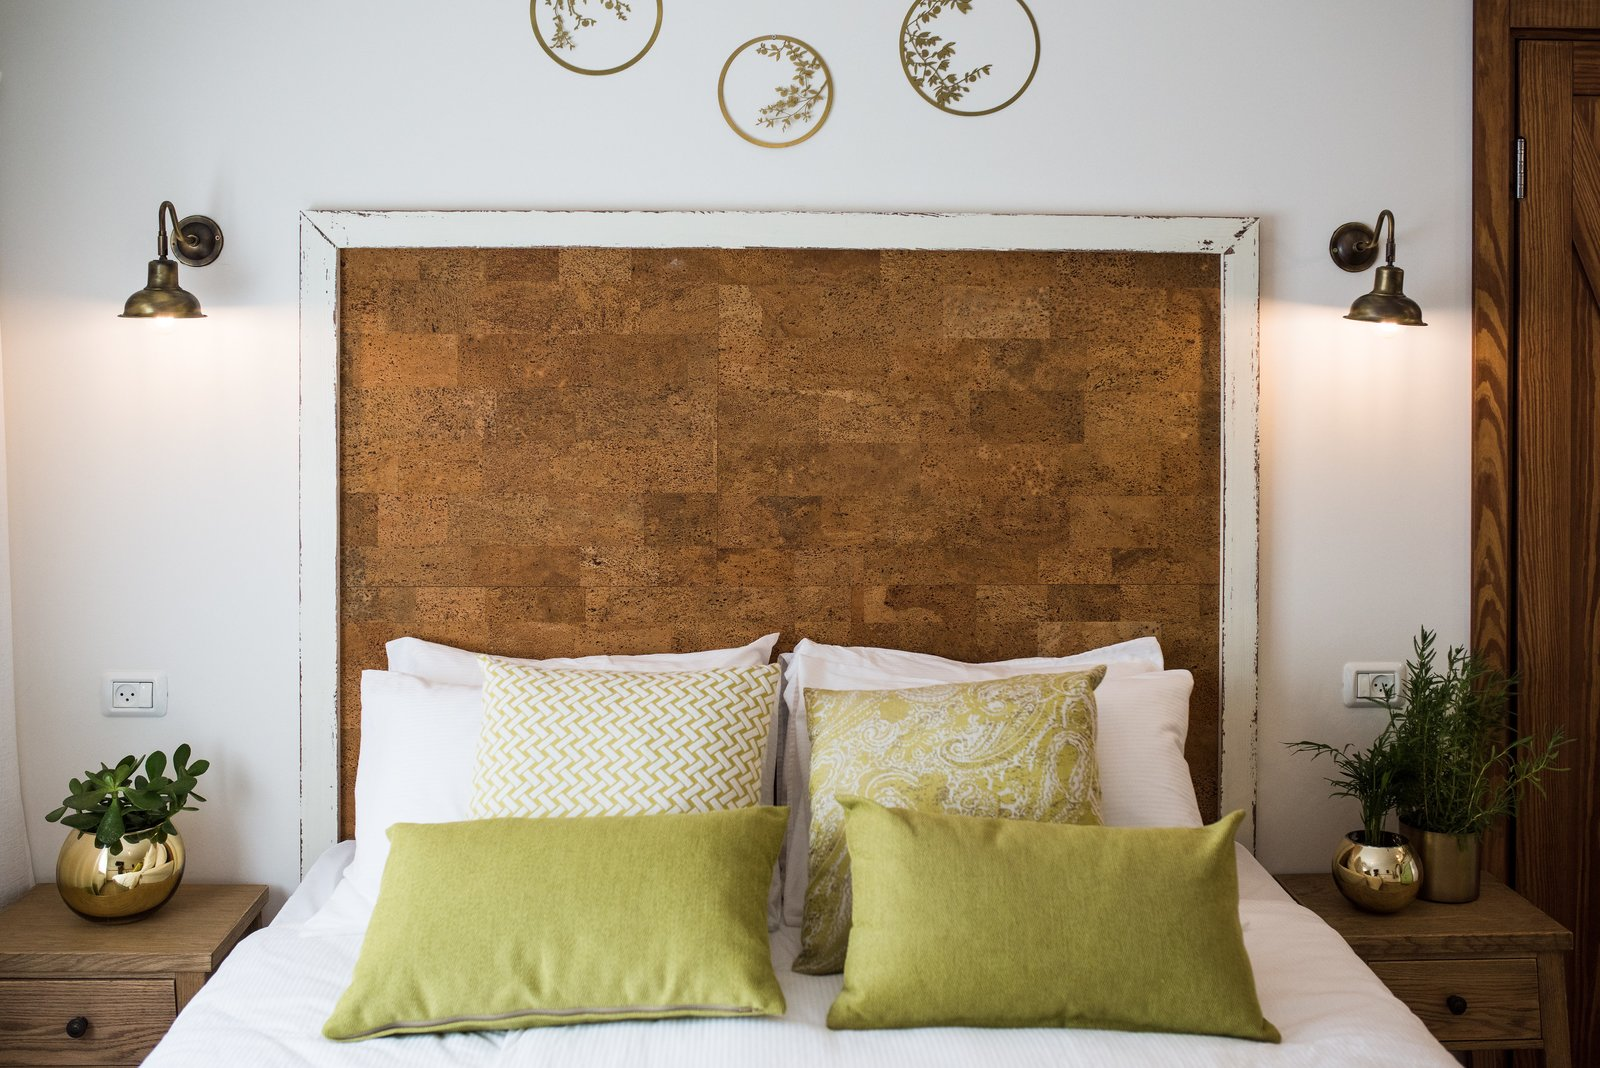 The Headboard Is Made From Cork Board And Painted Wood Tagged Bedroom Bed